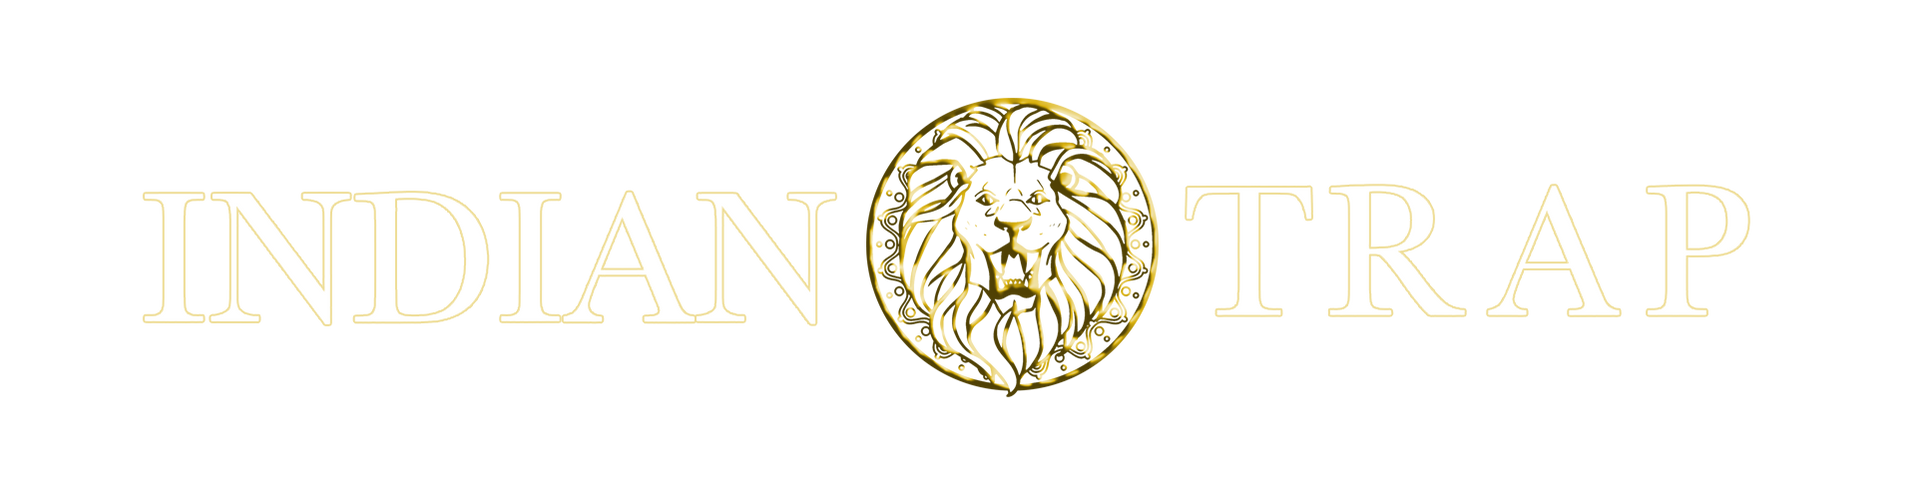 ITLLM_TN_NewLogo_transp_Yellow_hor.png